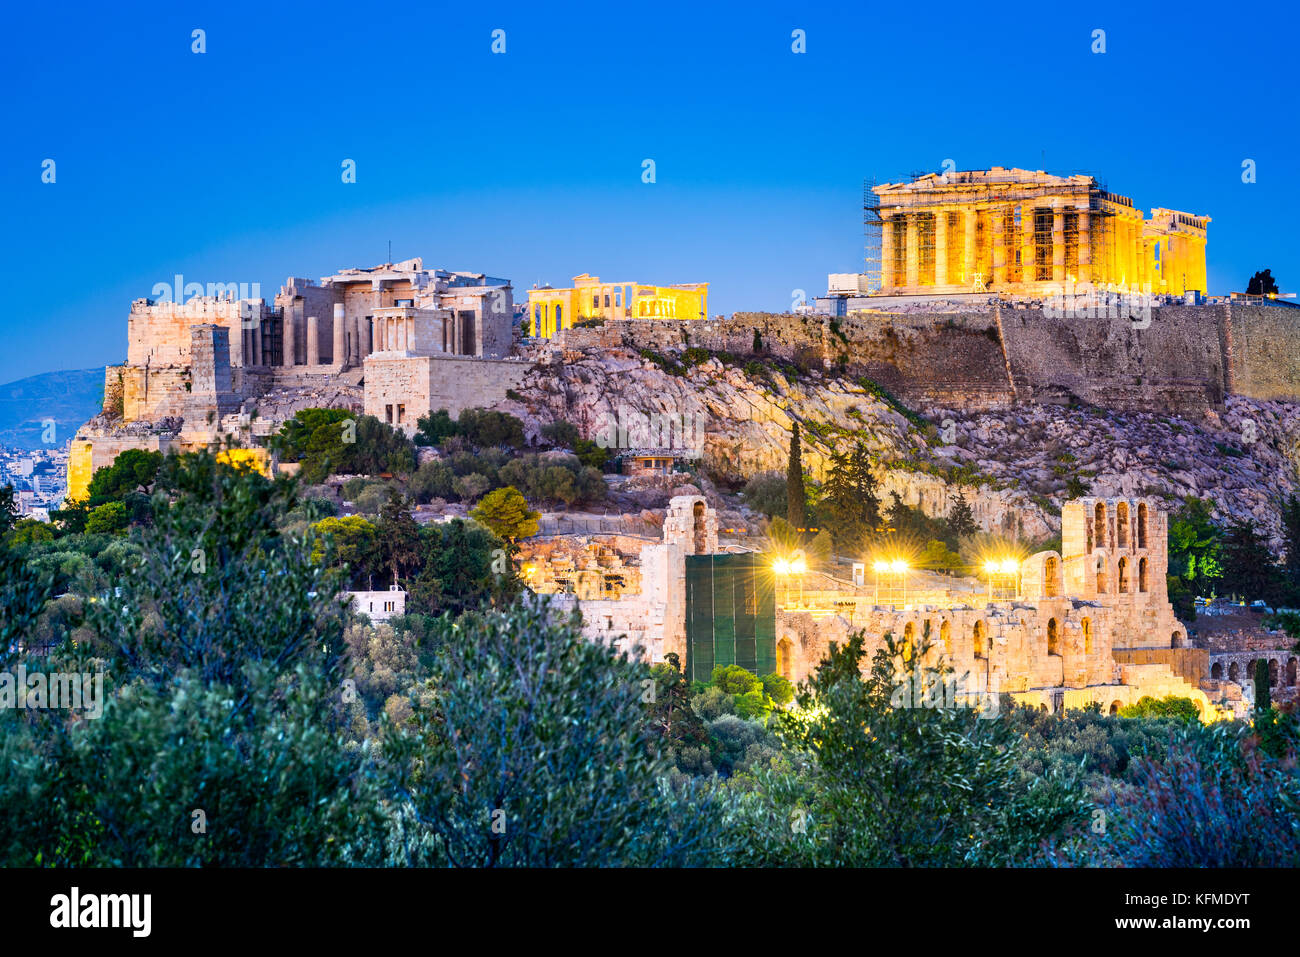 Athens, Greece - Night view of Acropolis, ancient citadel of Greek Civilization. Stock Photo